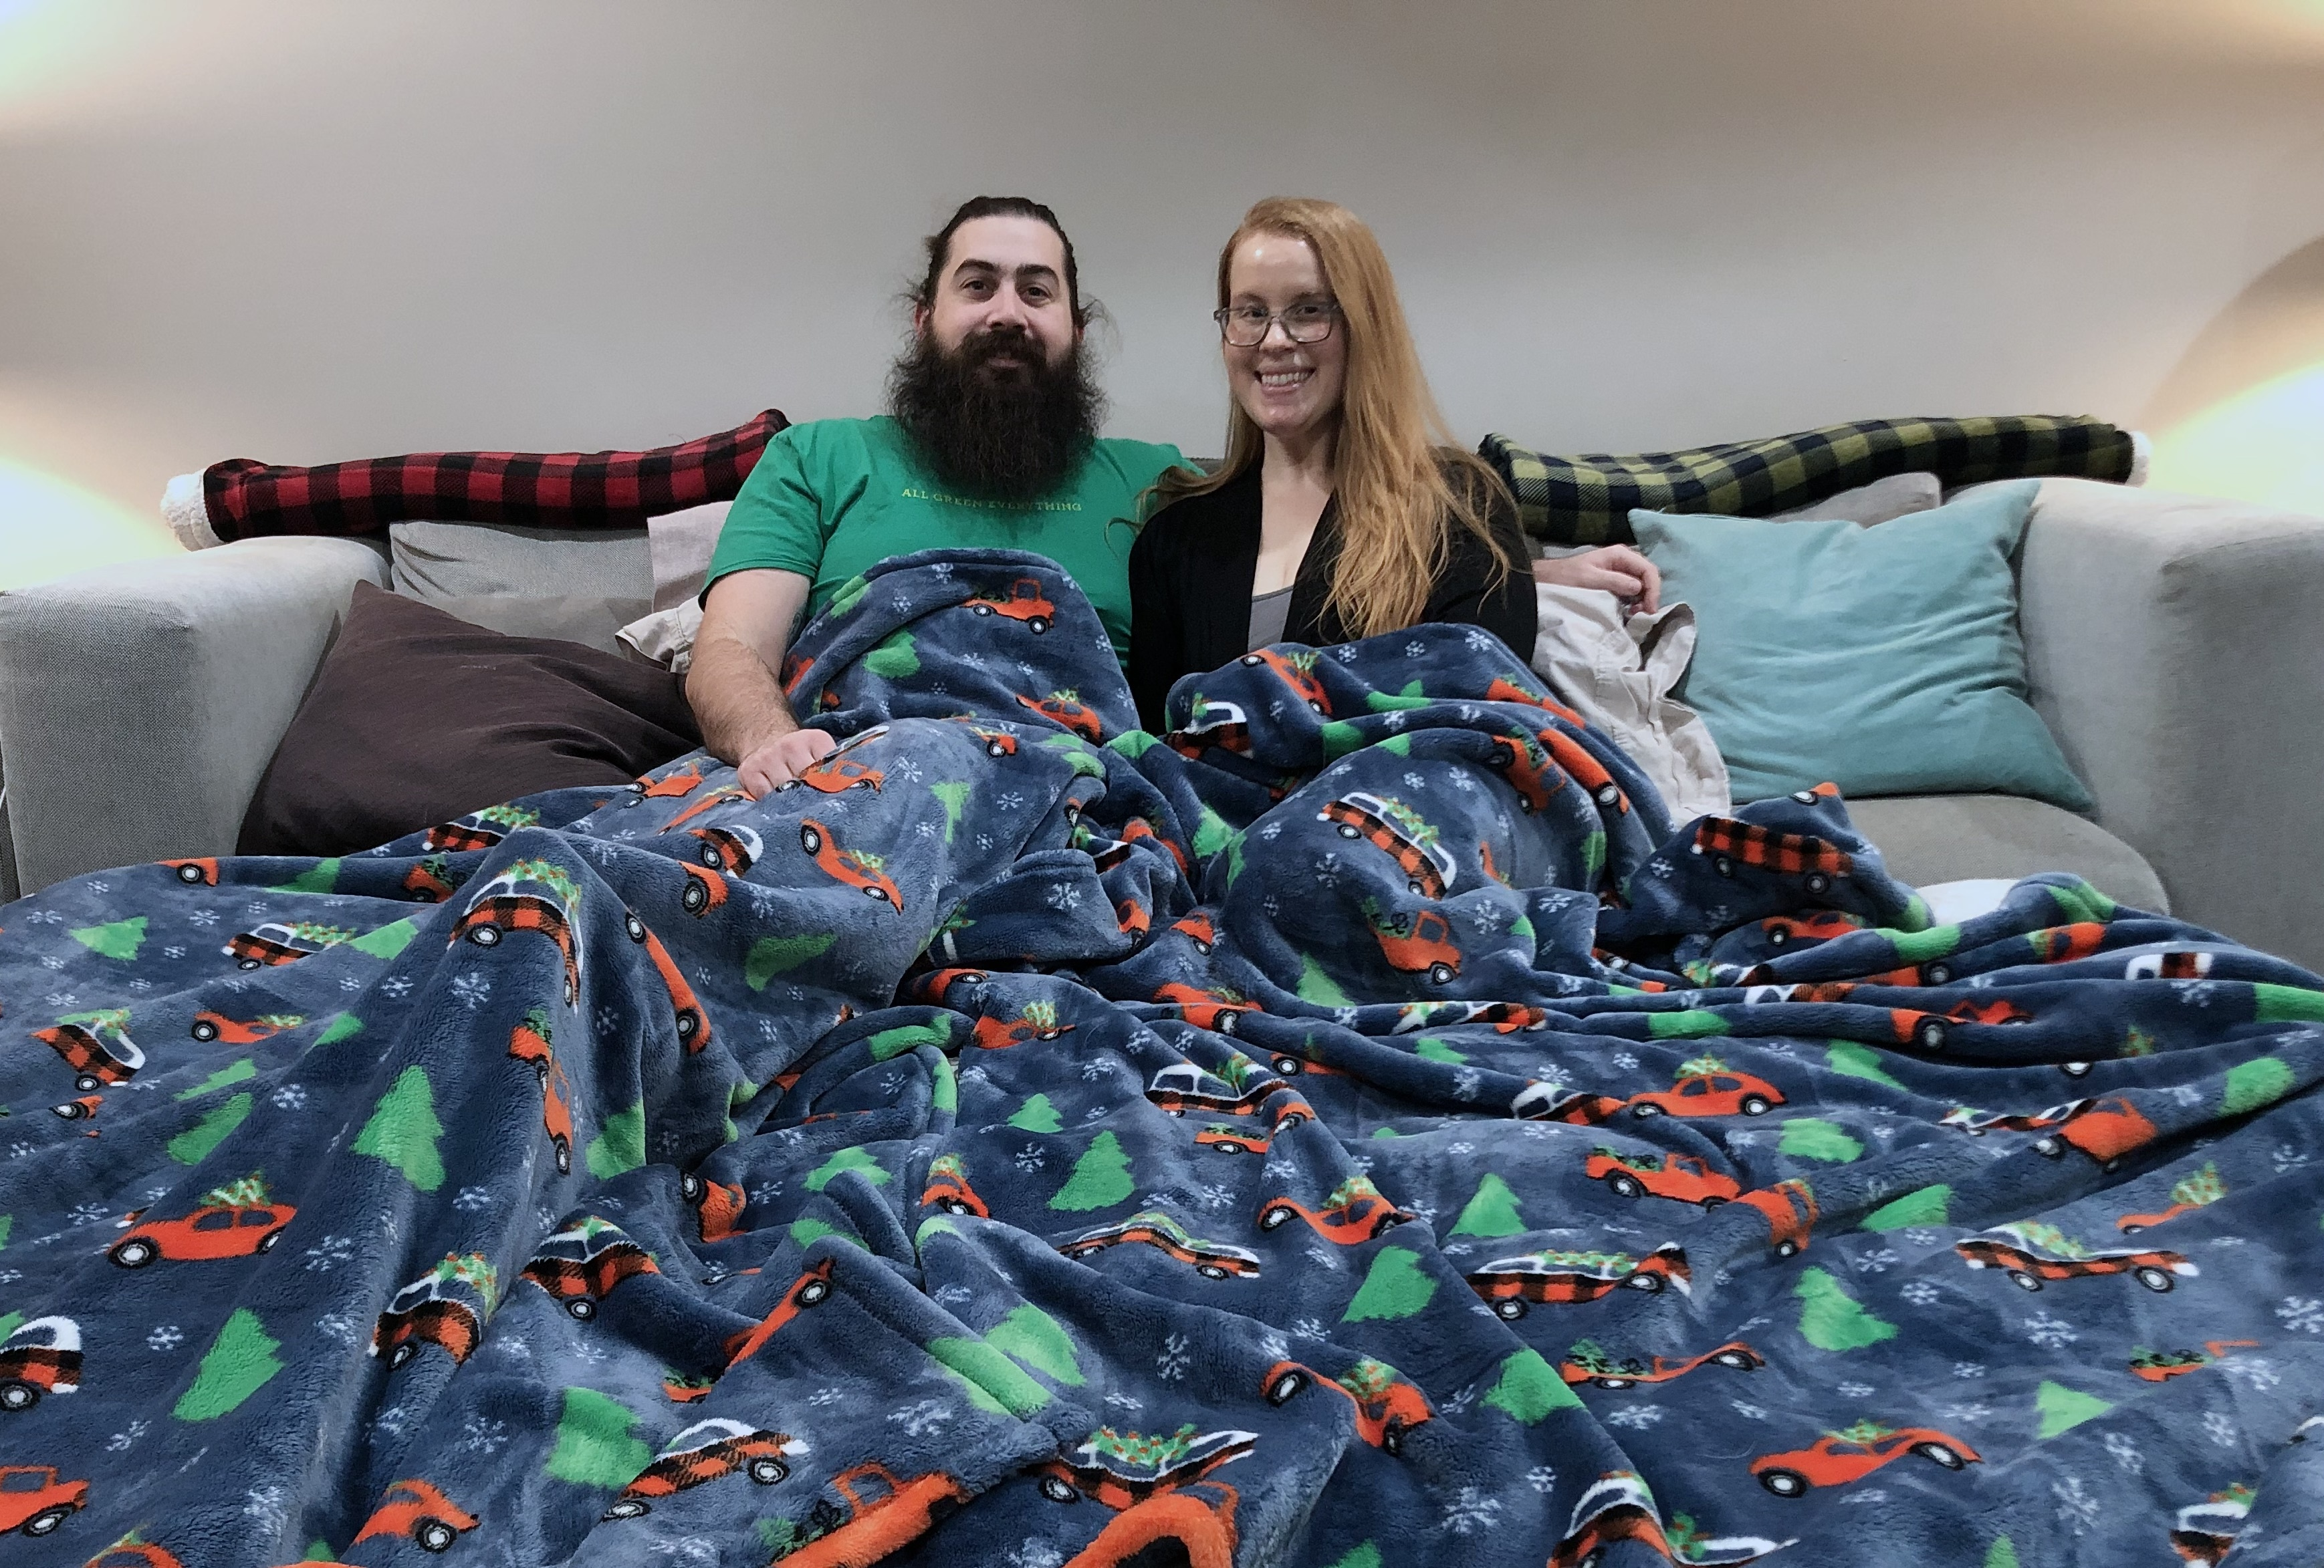 Steven Buller and his wife, Katie Retherford, set up an air mattress and attached it to the couch for a day full of watching Netflix.